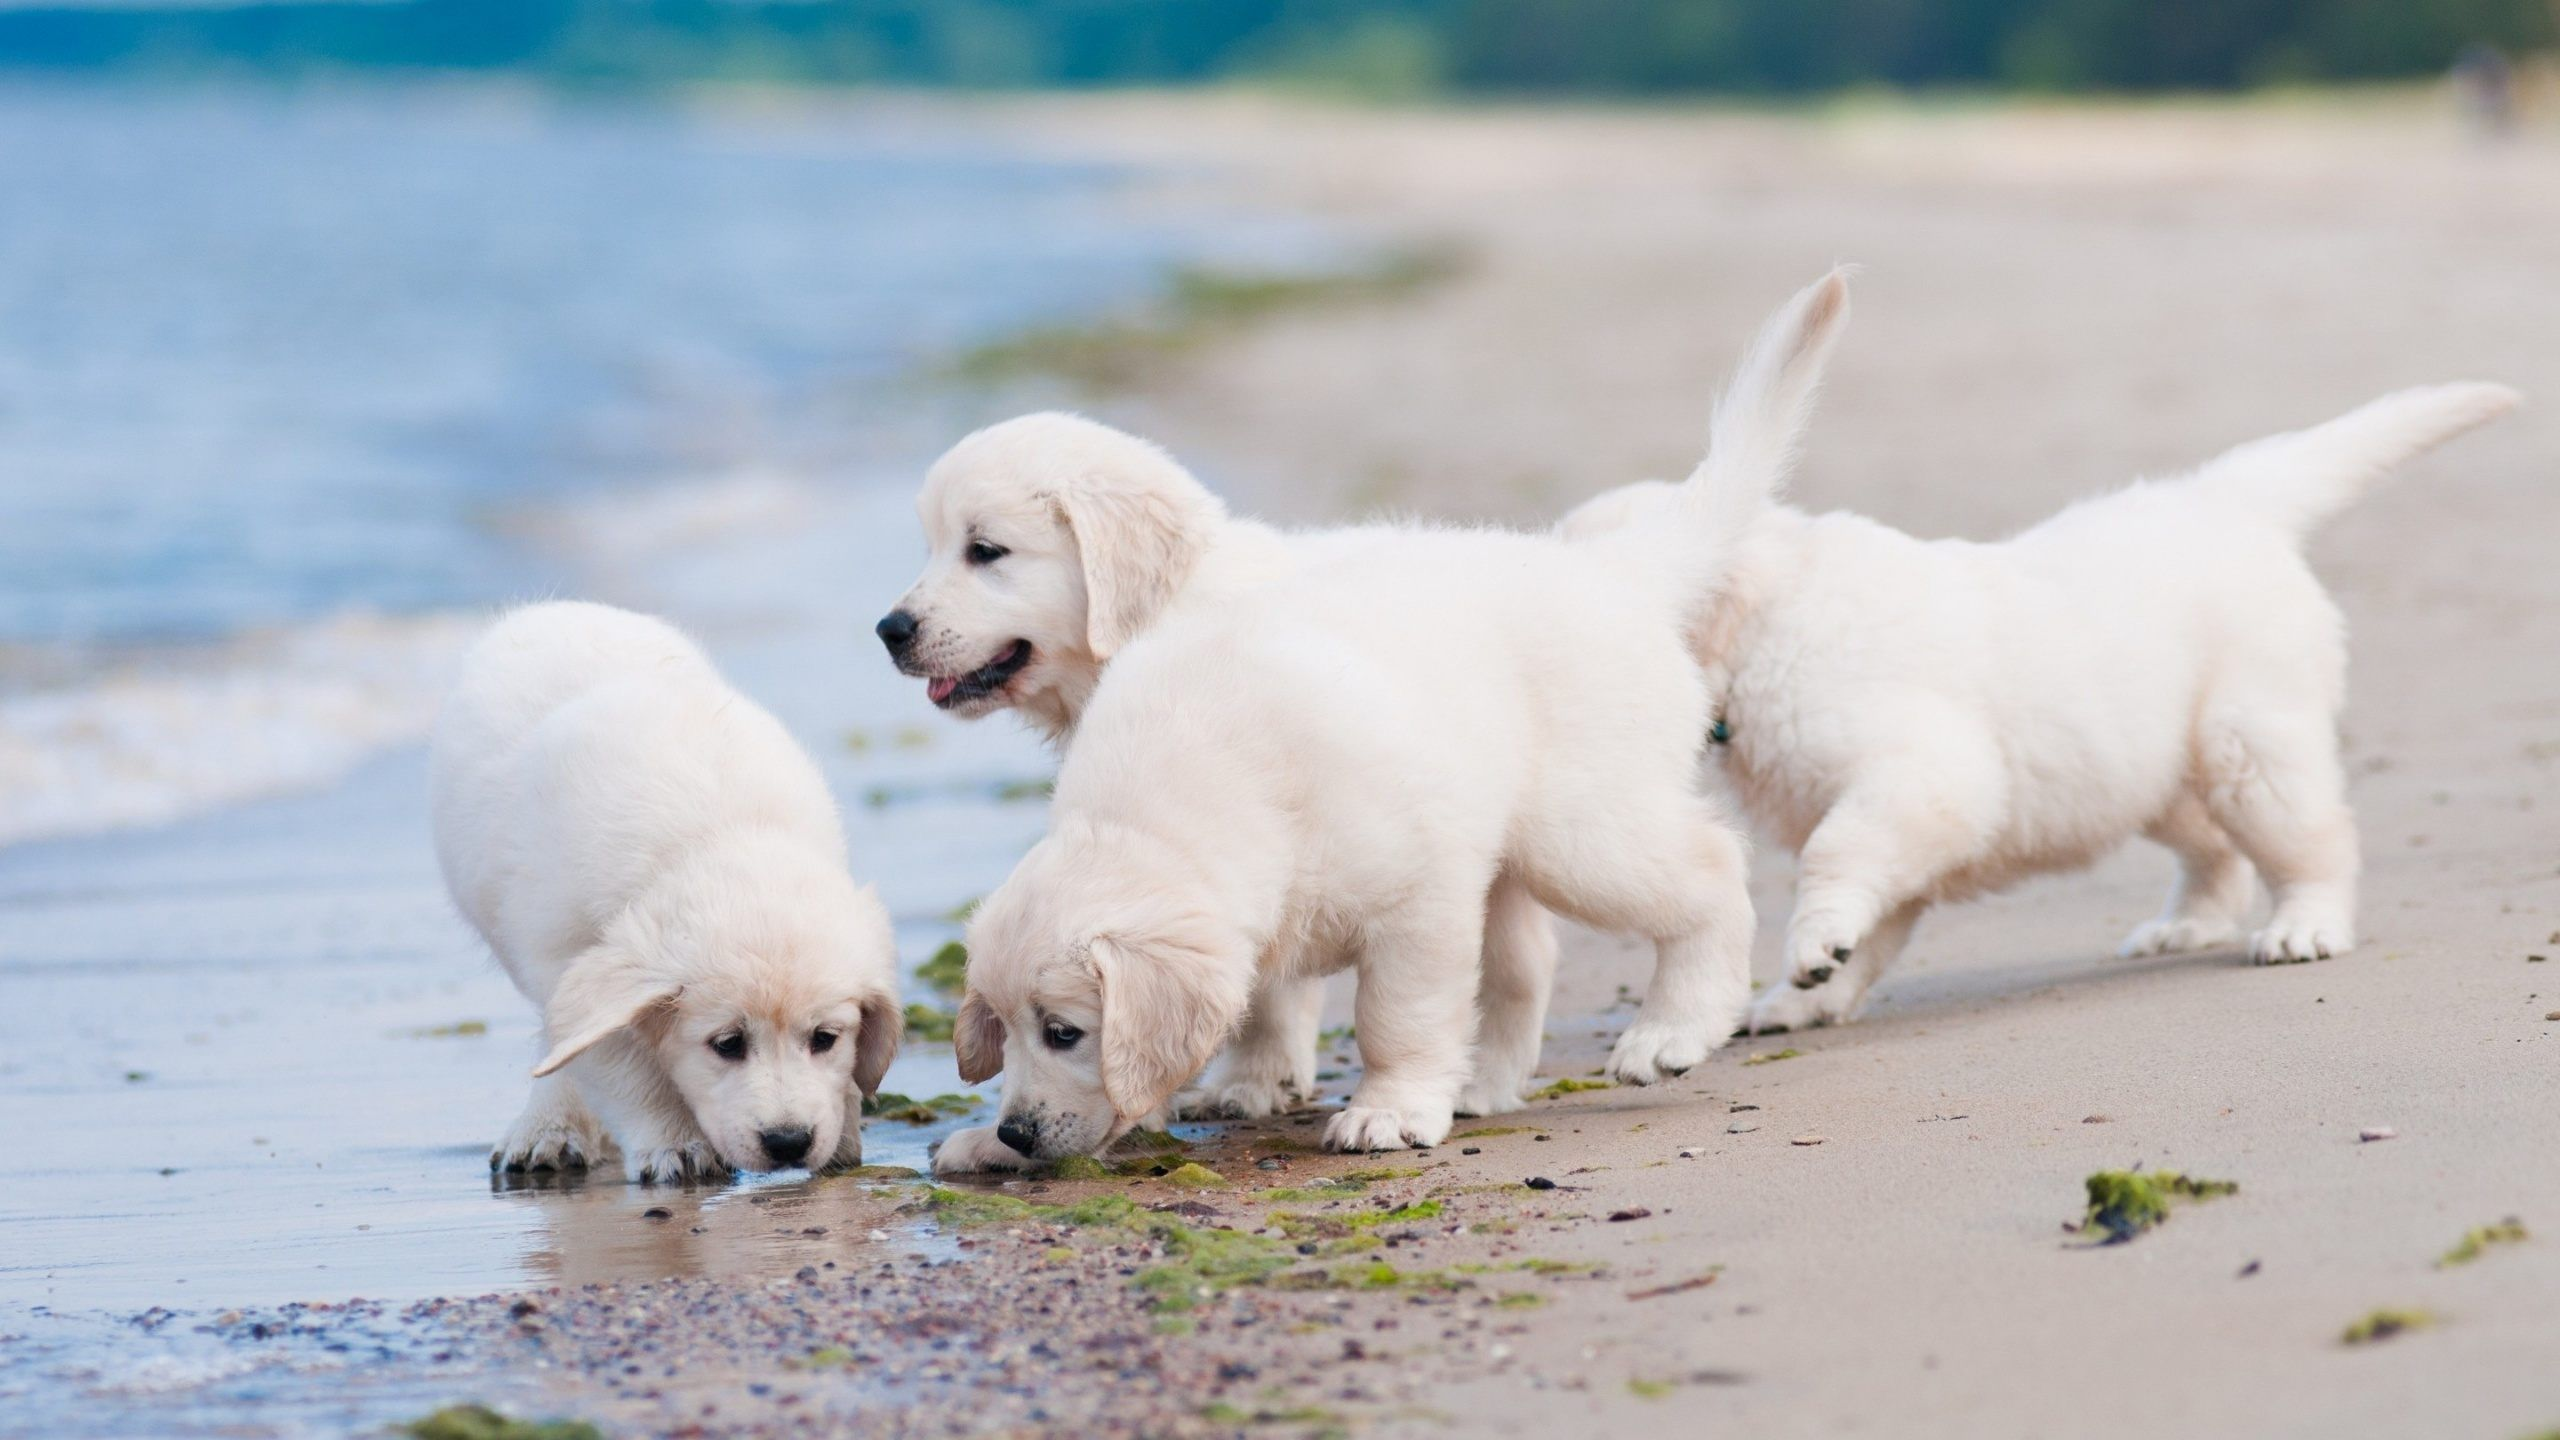 White Puppies Playing At Beach Wallpaper Hd For Desktop